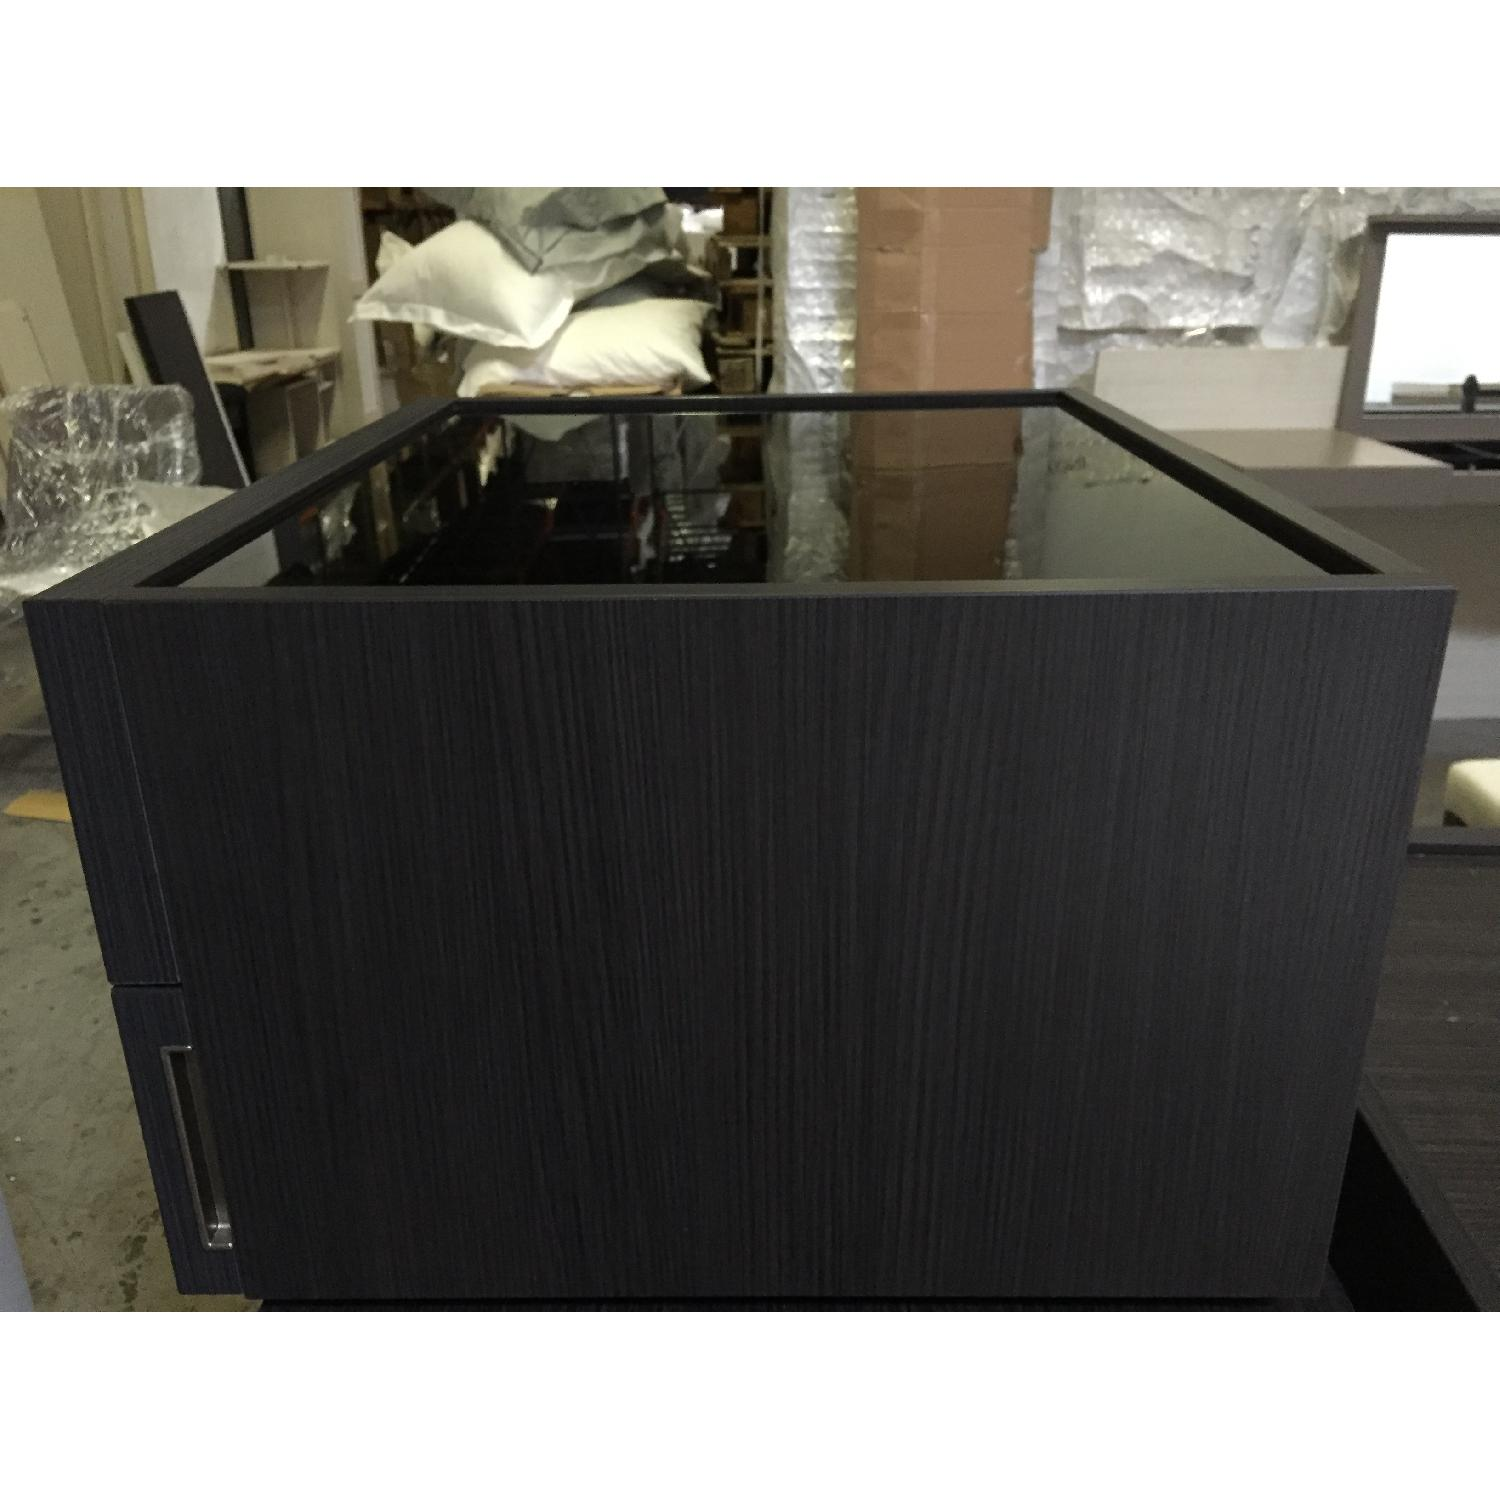 Lazzoni Black Glasstop Smoke Wood Nightstand - image-7